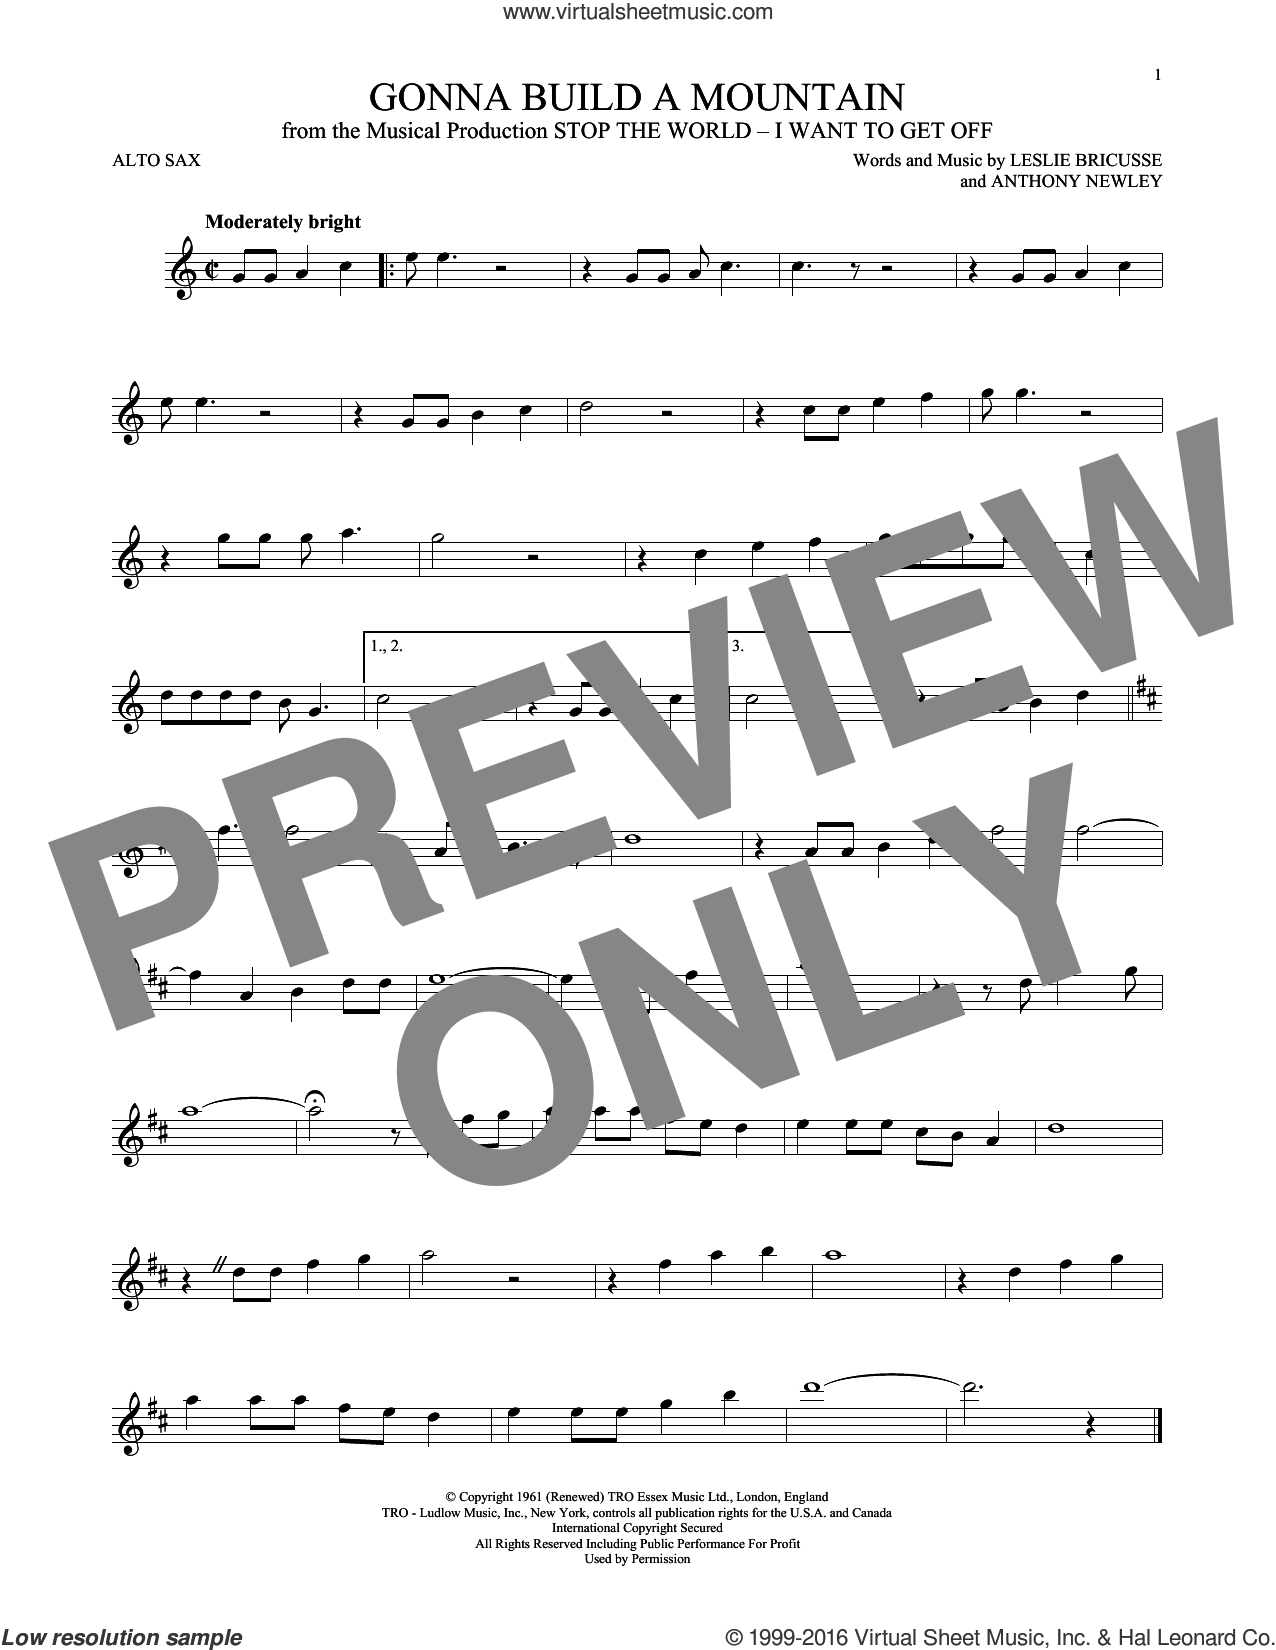 Gonna Build A Mountain sheet music for alto saxophone solo by Leslie Bricusse and Anthony Newley, intermediate alto saxophone. Score Image Preview.